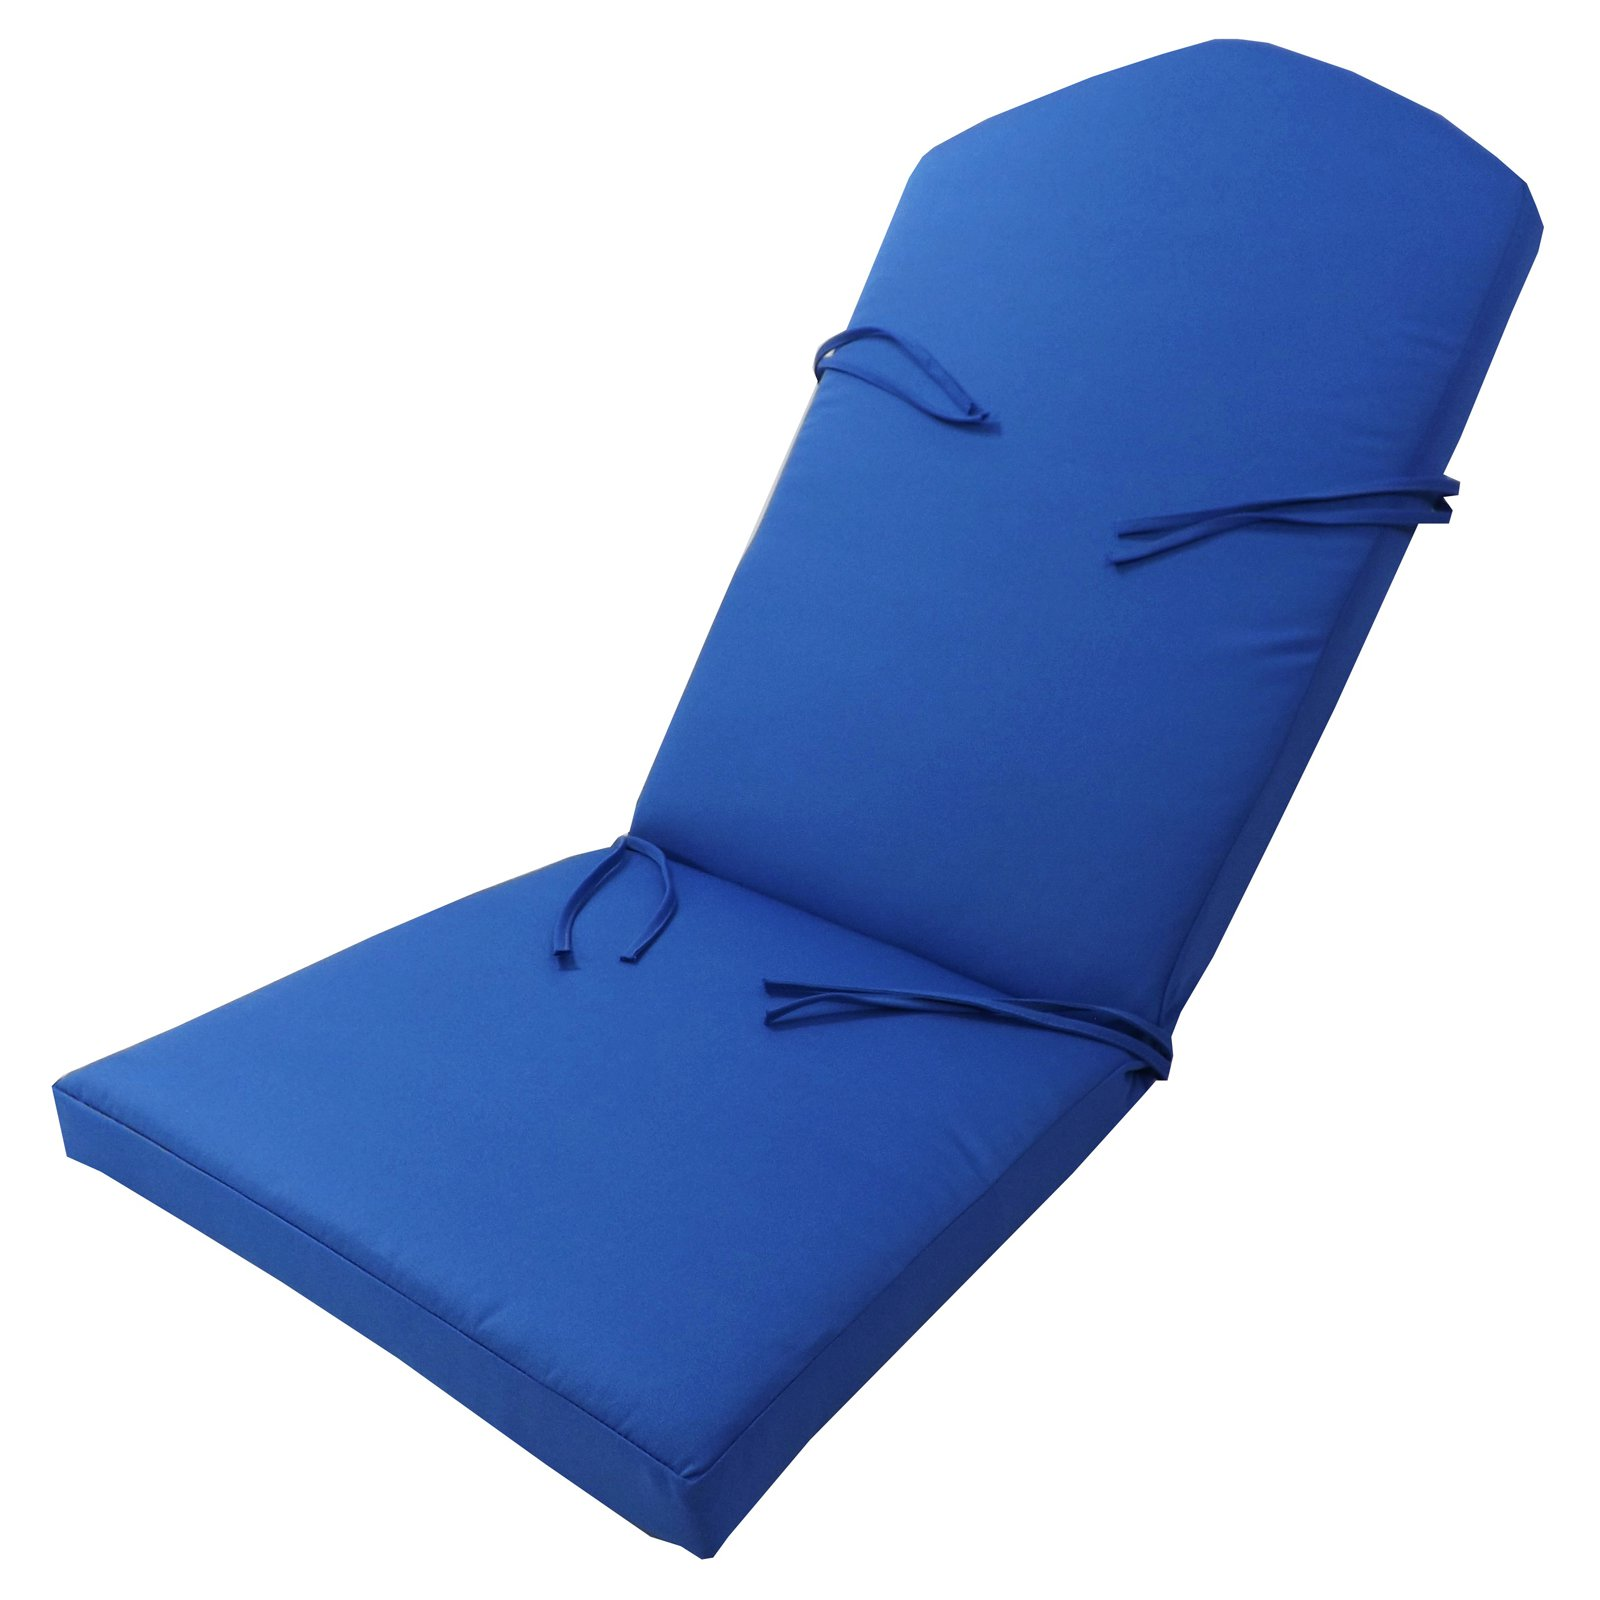 Cushion Pros Hinged Sunbrella Adirondack Chair Cushion Set